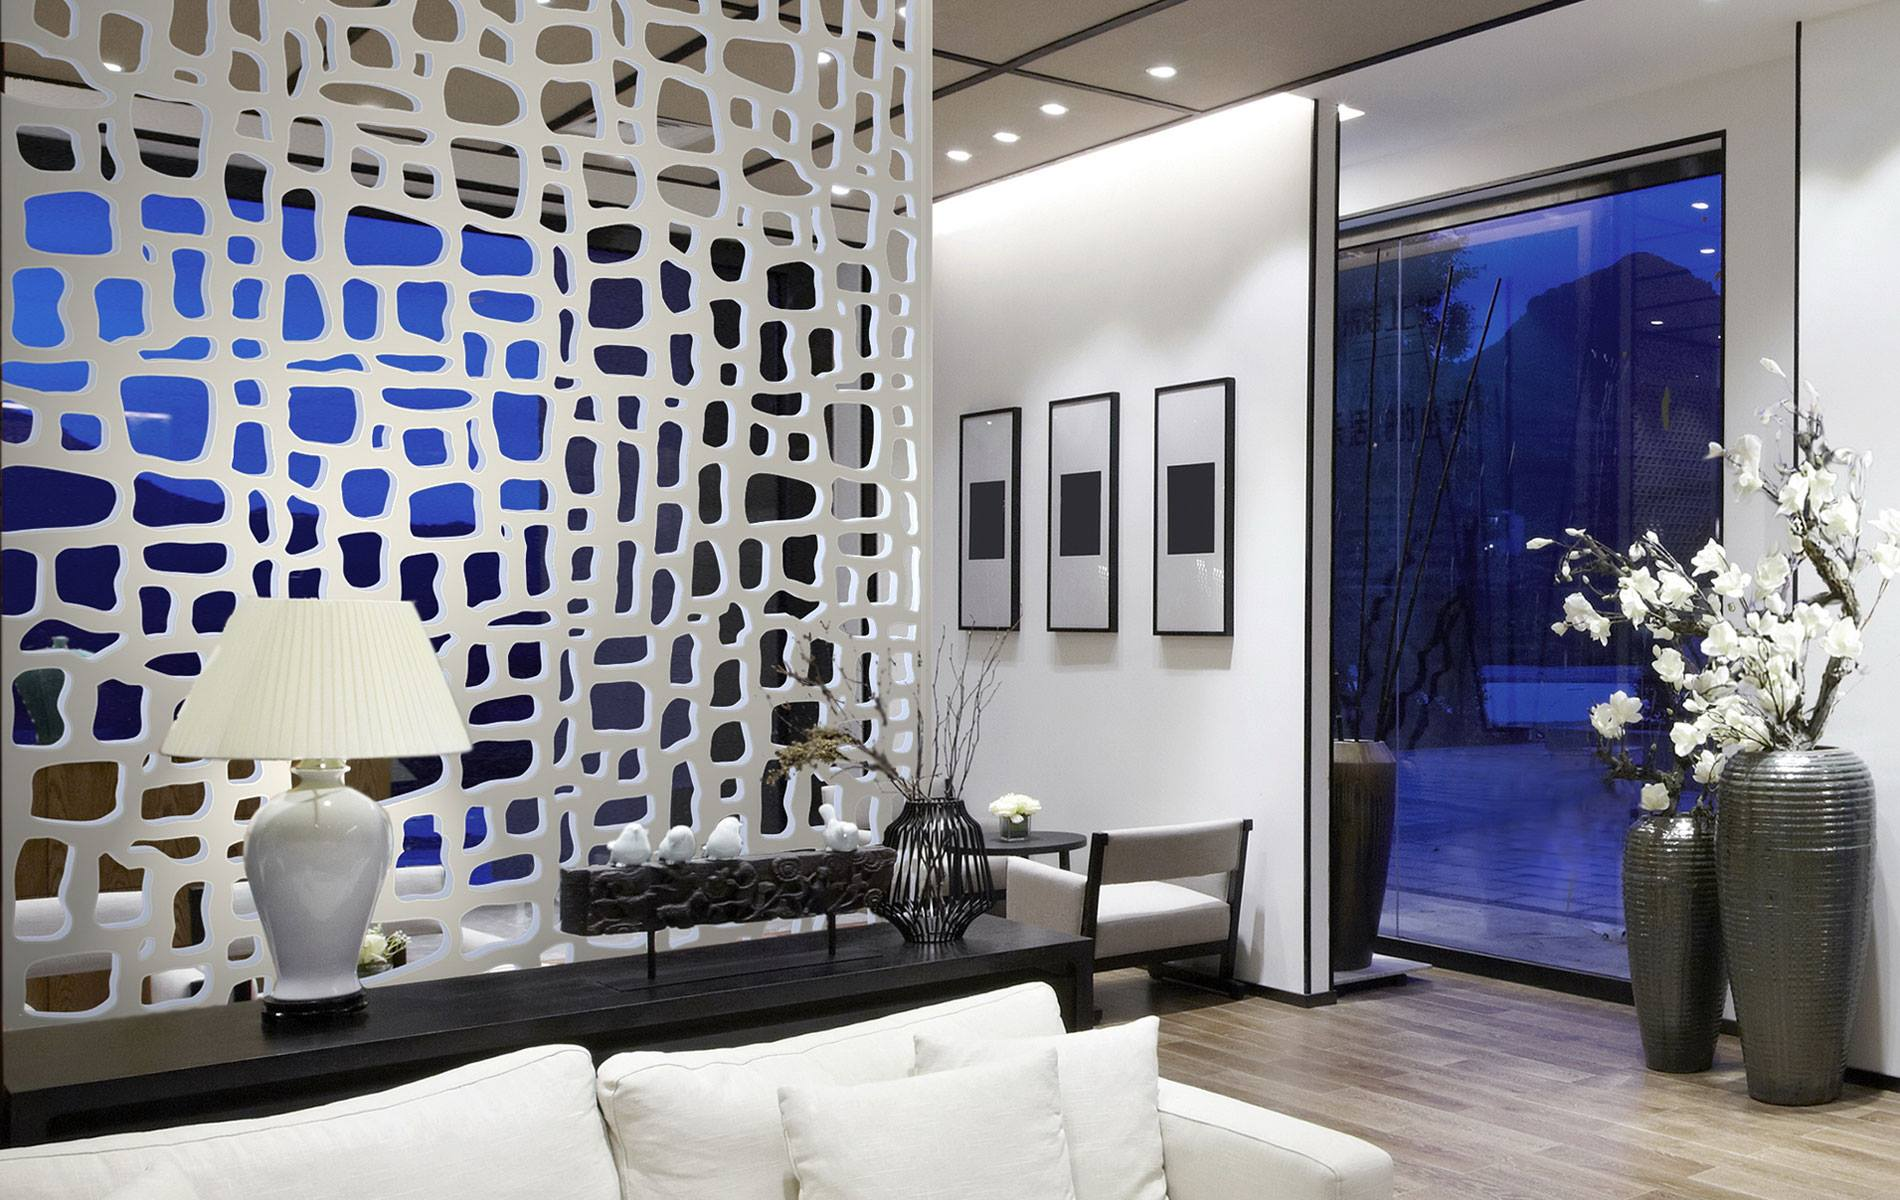 Design Wall 30 Creative Partition Ideas That Can Replace Walls